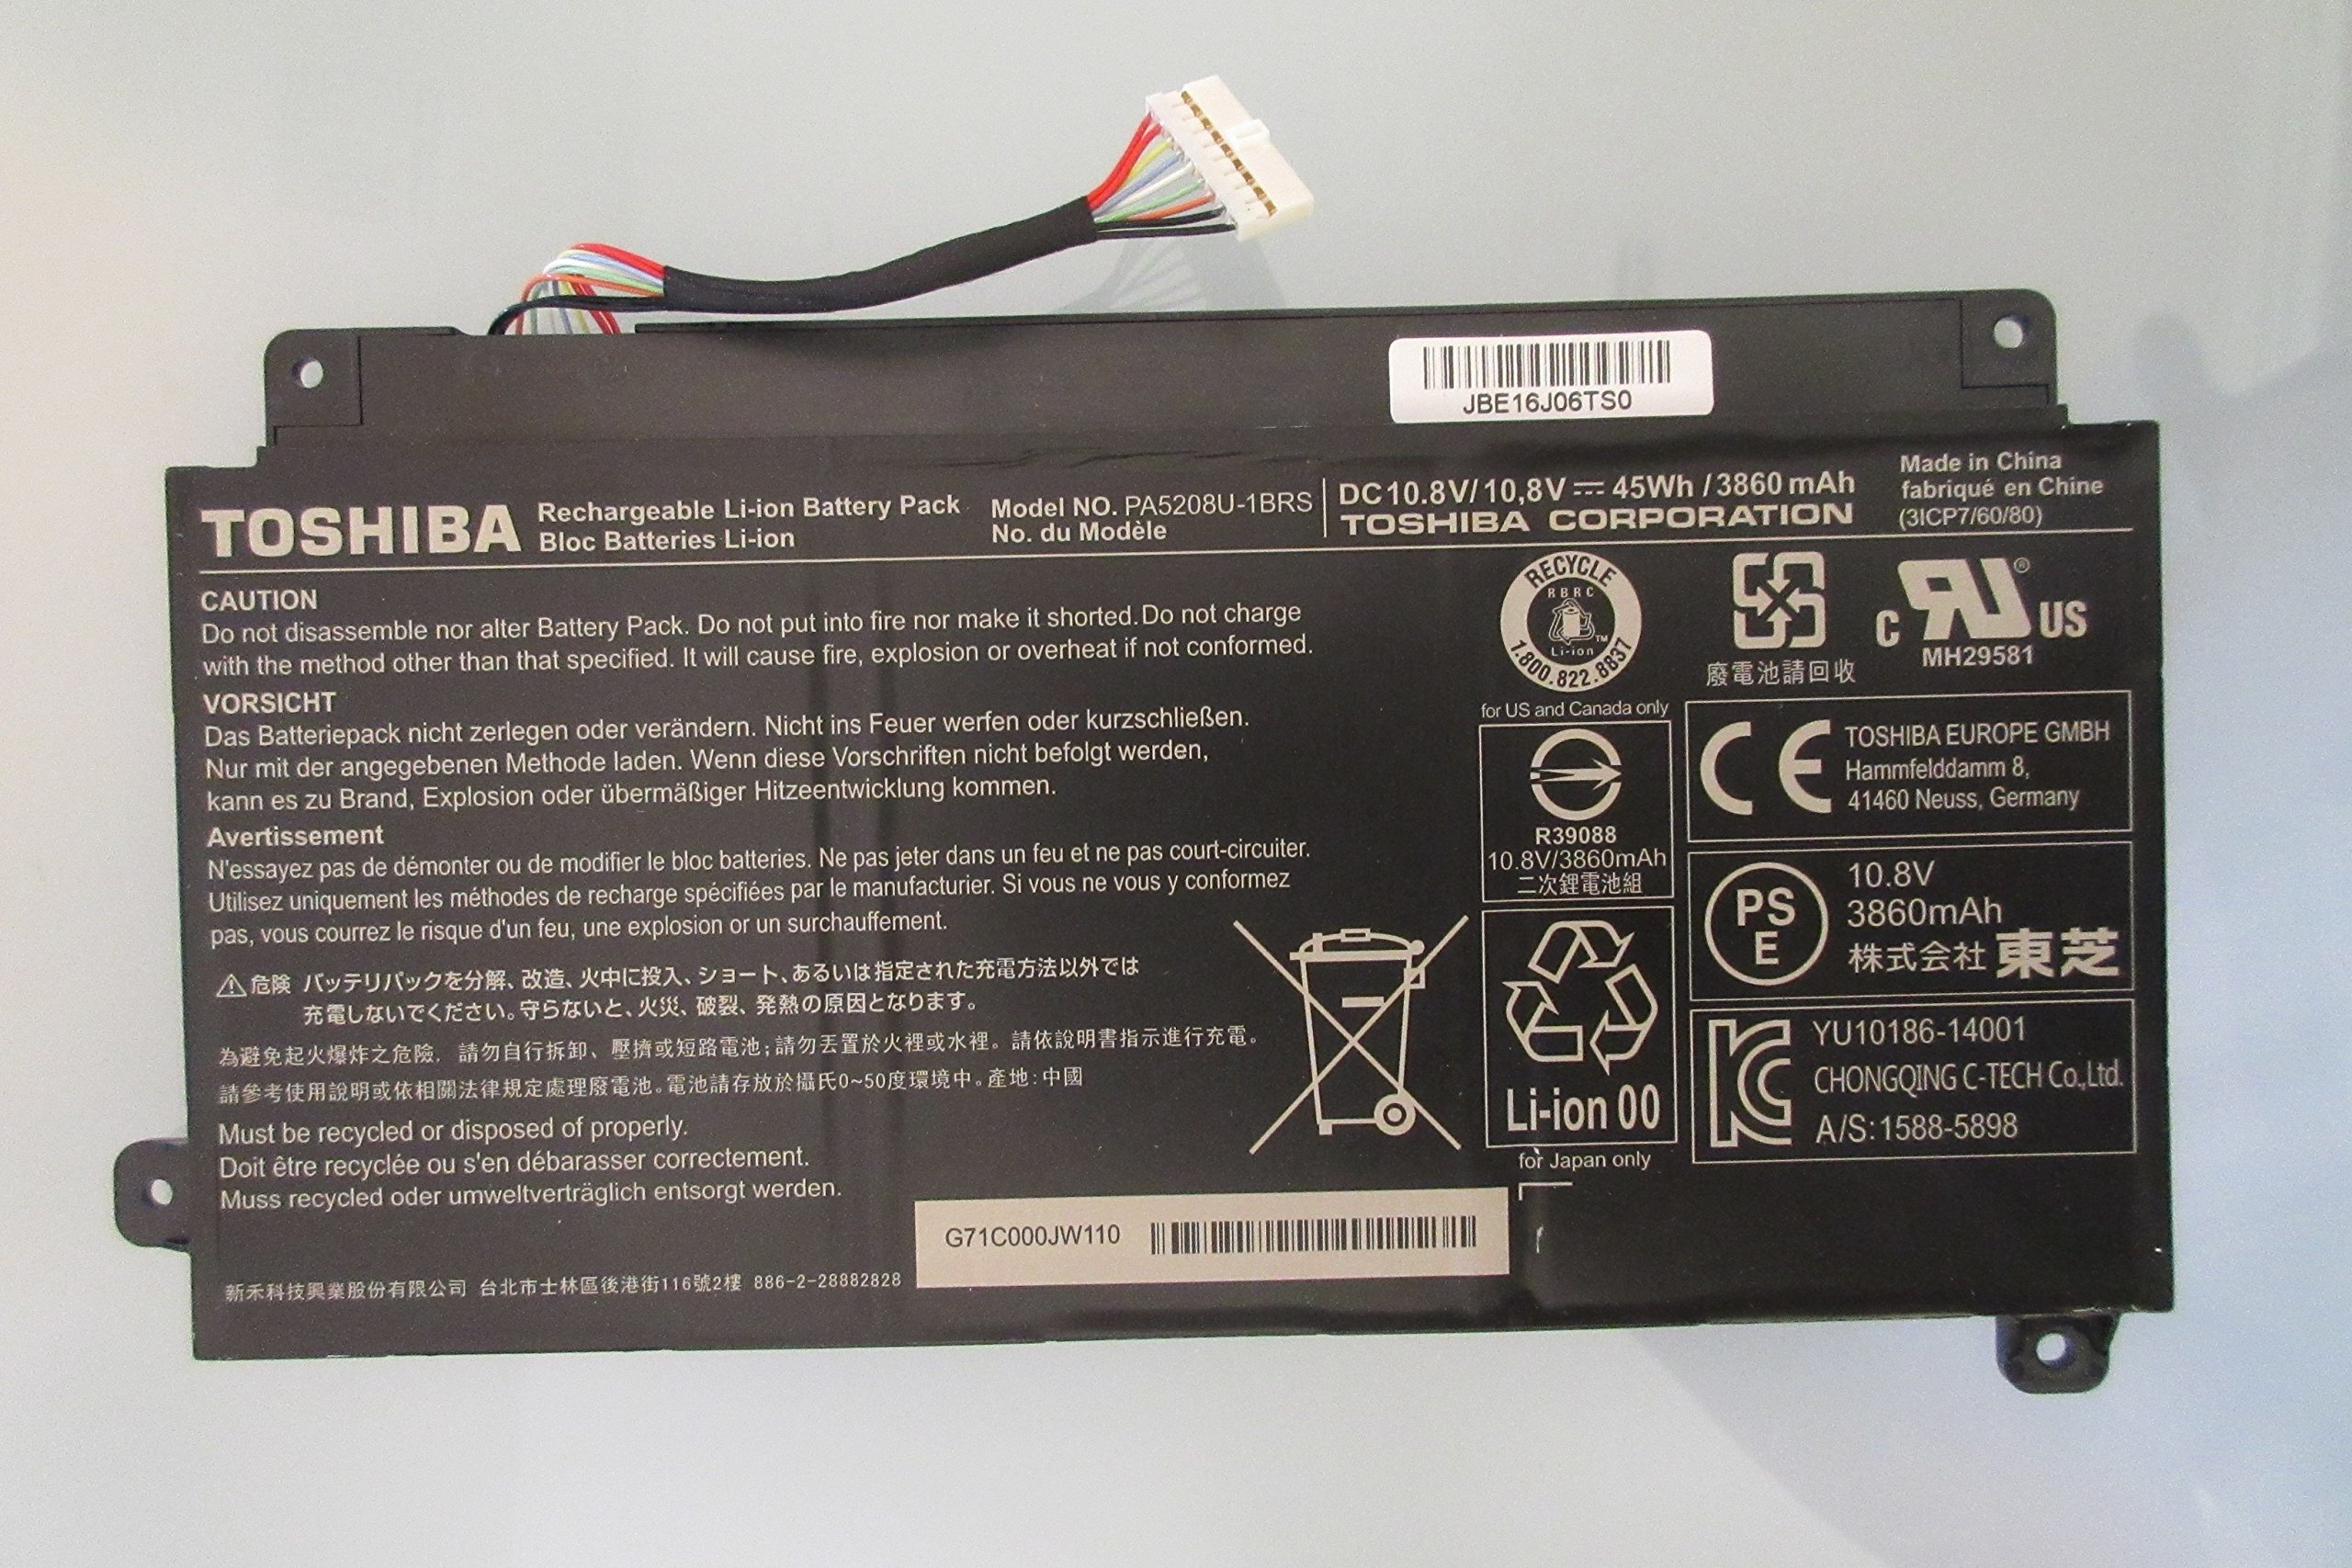 Li-ion 3 Cell Battery 45Wh 10.8V for Toshiba Satellite L55W-C5220 L55W-C5352 Series New Genuine